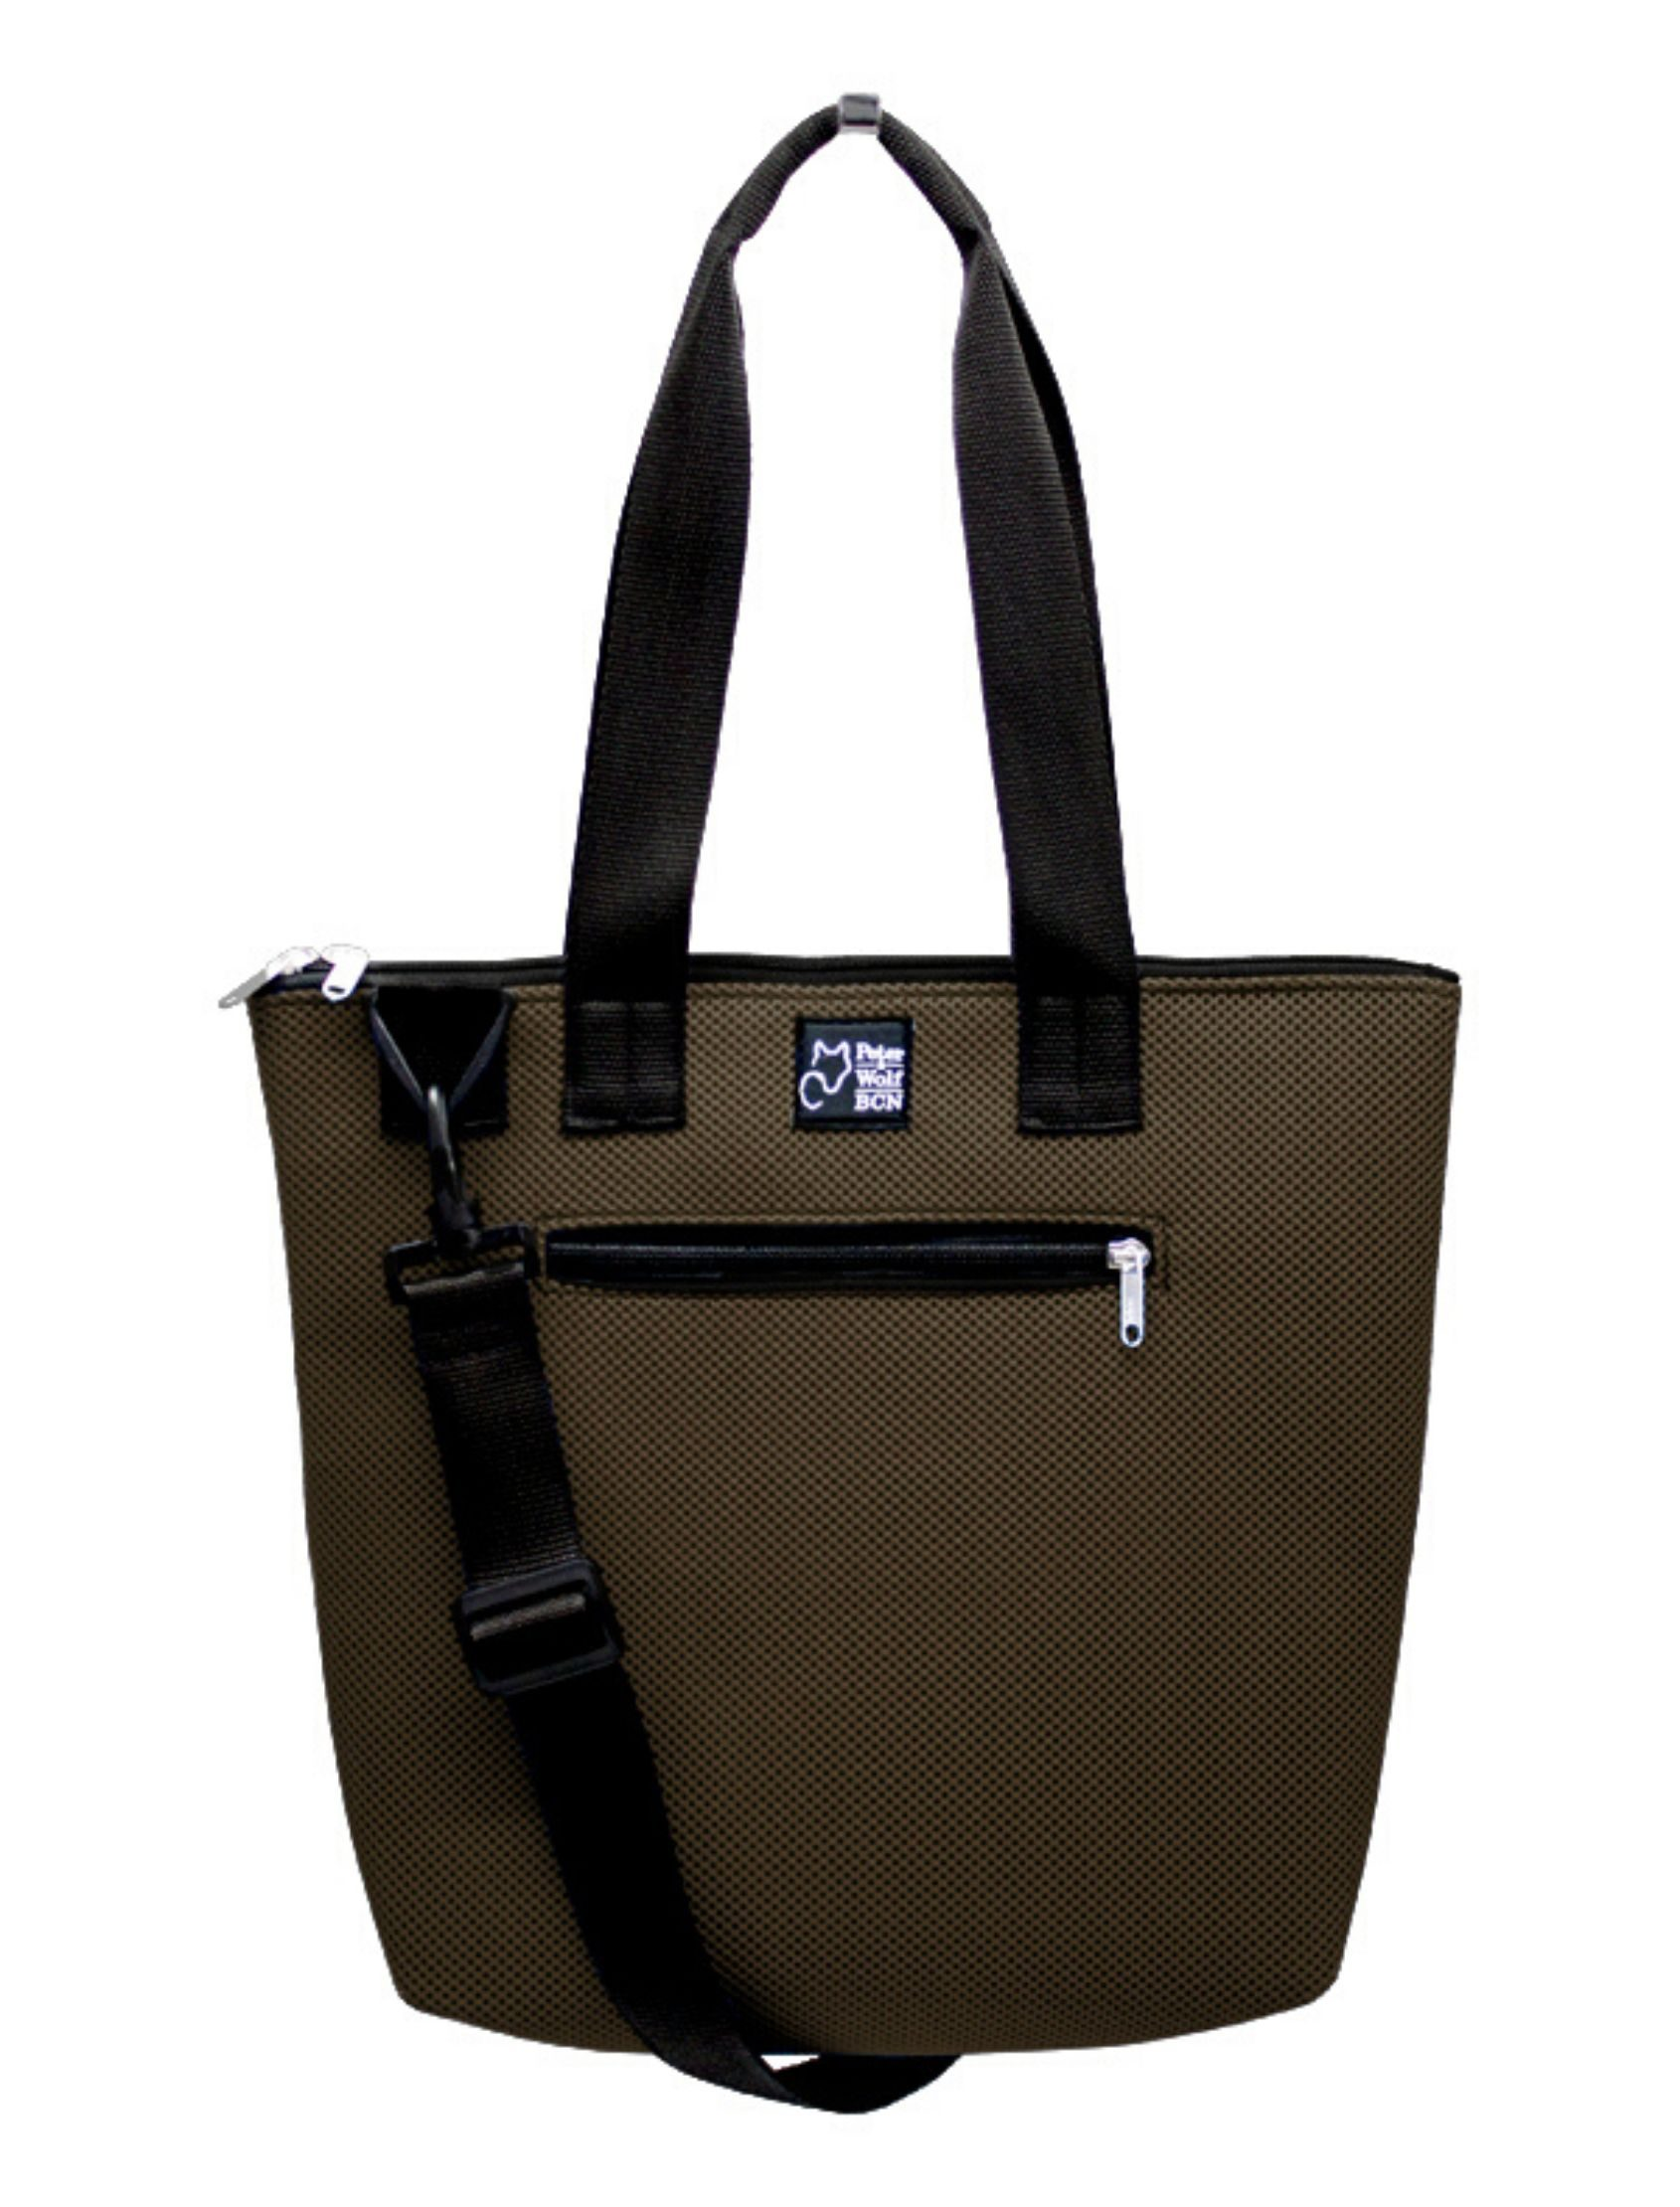 BOLSO BARCO SPORT BROWN DE PETER AND WOLF BARCELONA. EN COLOR MARRÓN Y CON TEJIDO TECNICO 3D